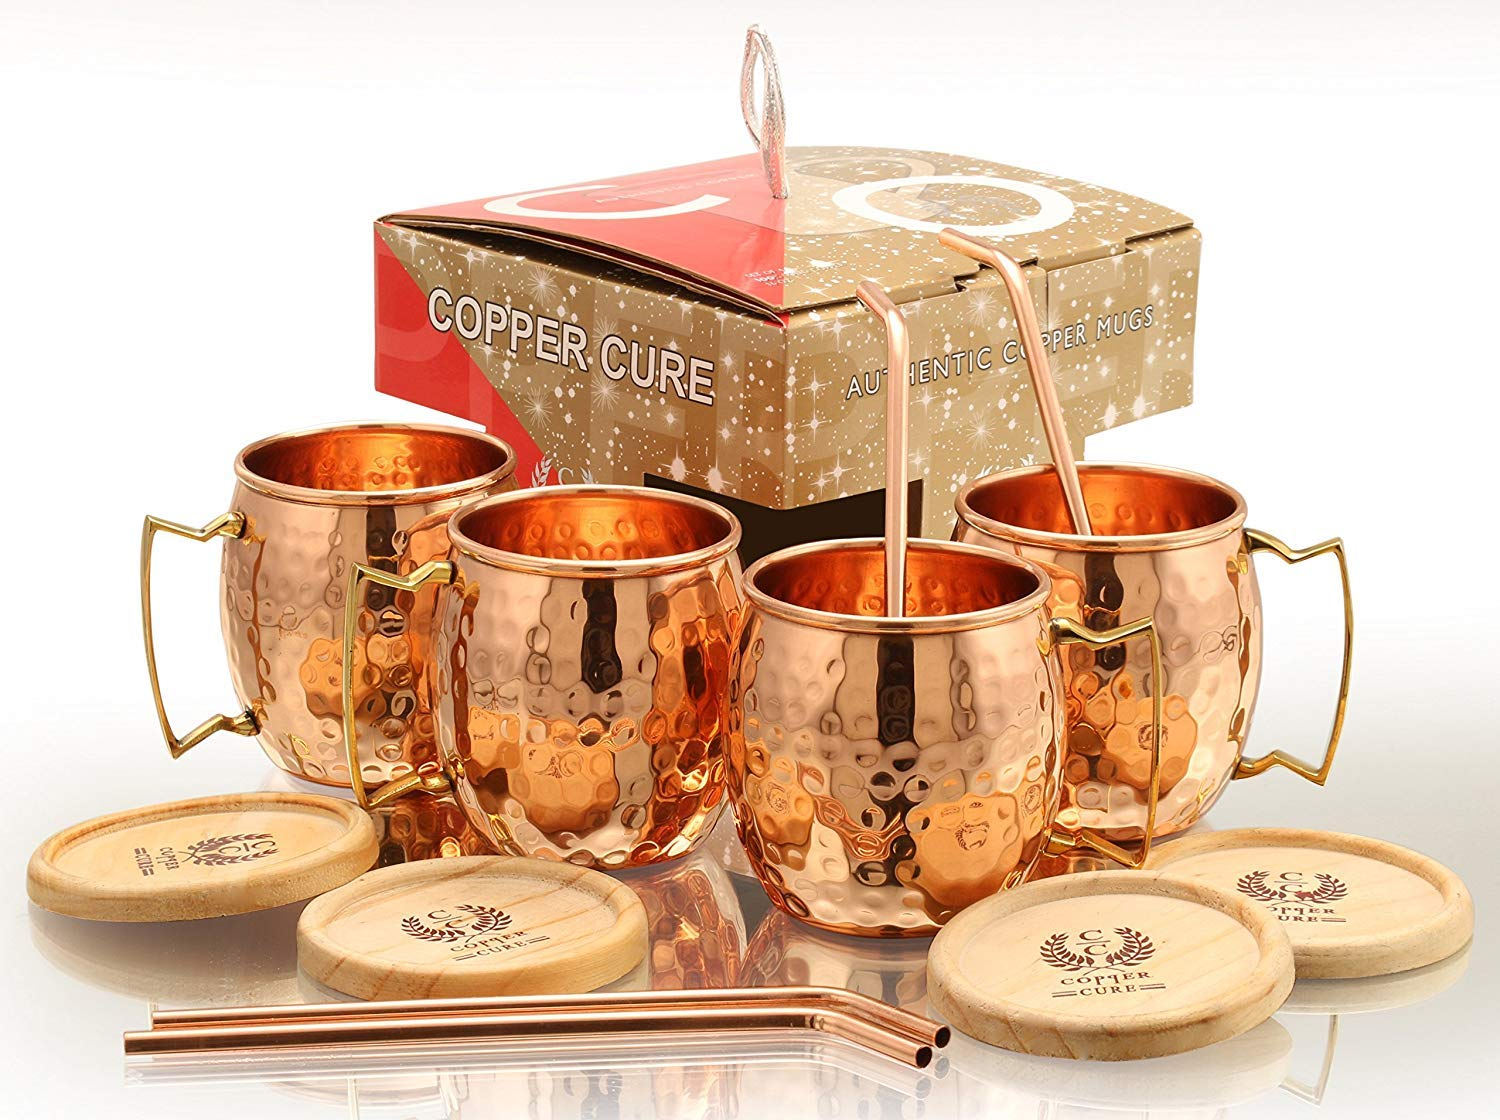 Moscow Mule Copper Mugs - Set of 4 (Gift Set) 16 Oz -Solid Copper Mugs - 100% Handicrafted - Moscow Mule Mugs - Copper Mugs - Copper Cups With BONUS Copper Straws & Coasters by Copper Cure